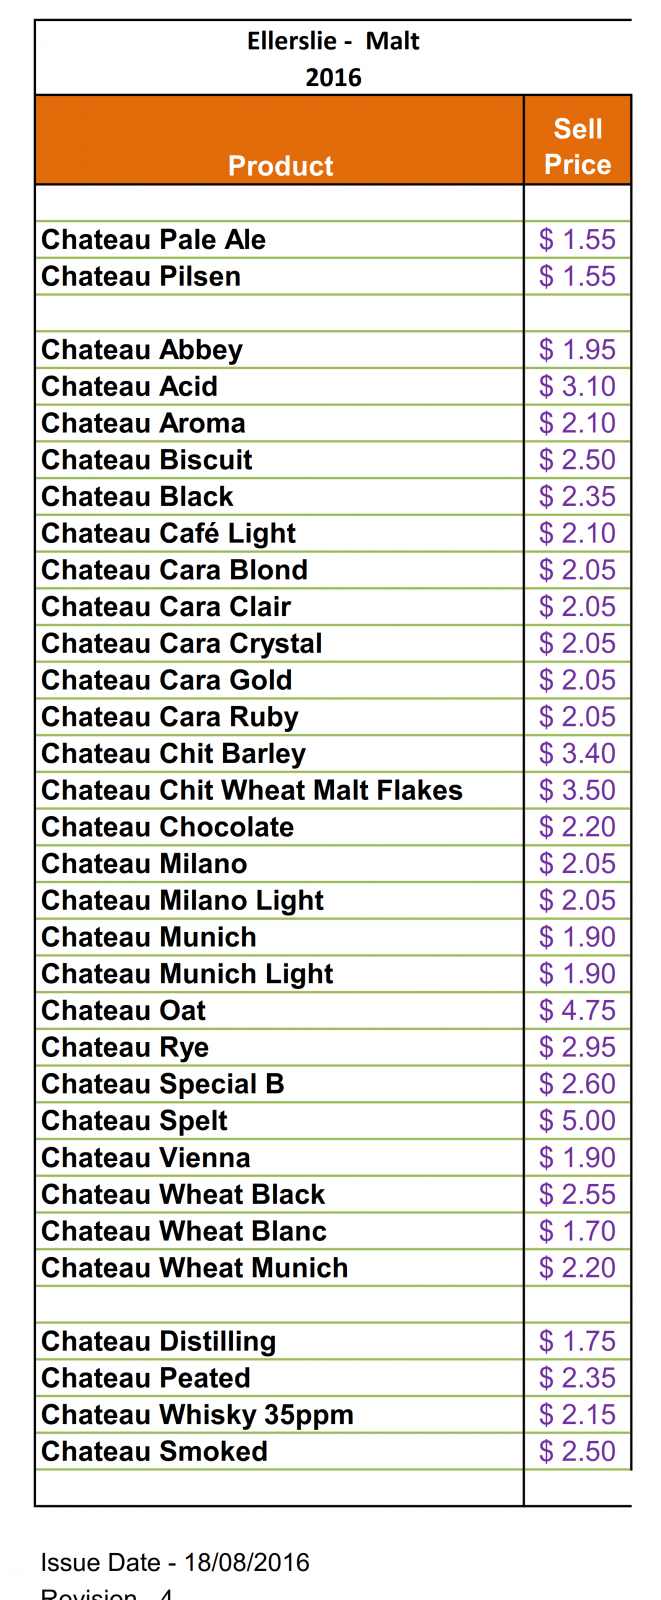 Malt price list_260416.001_1.png